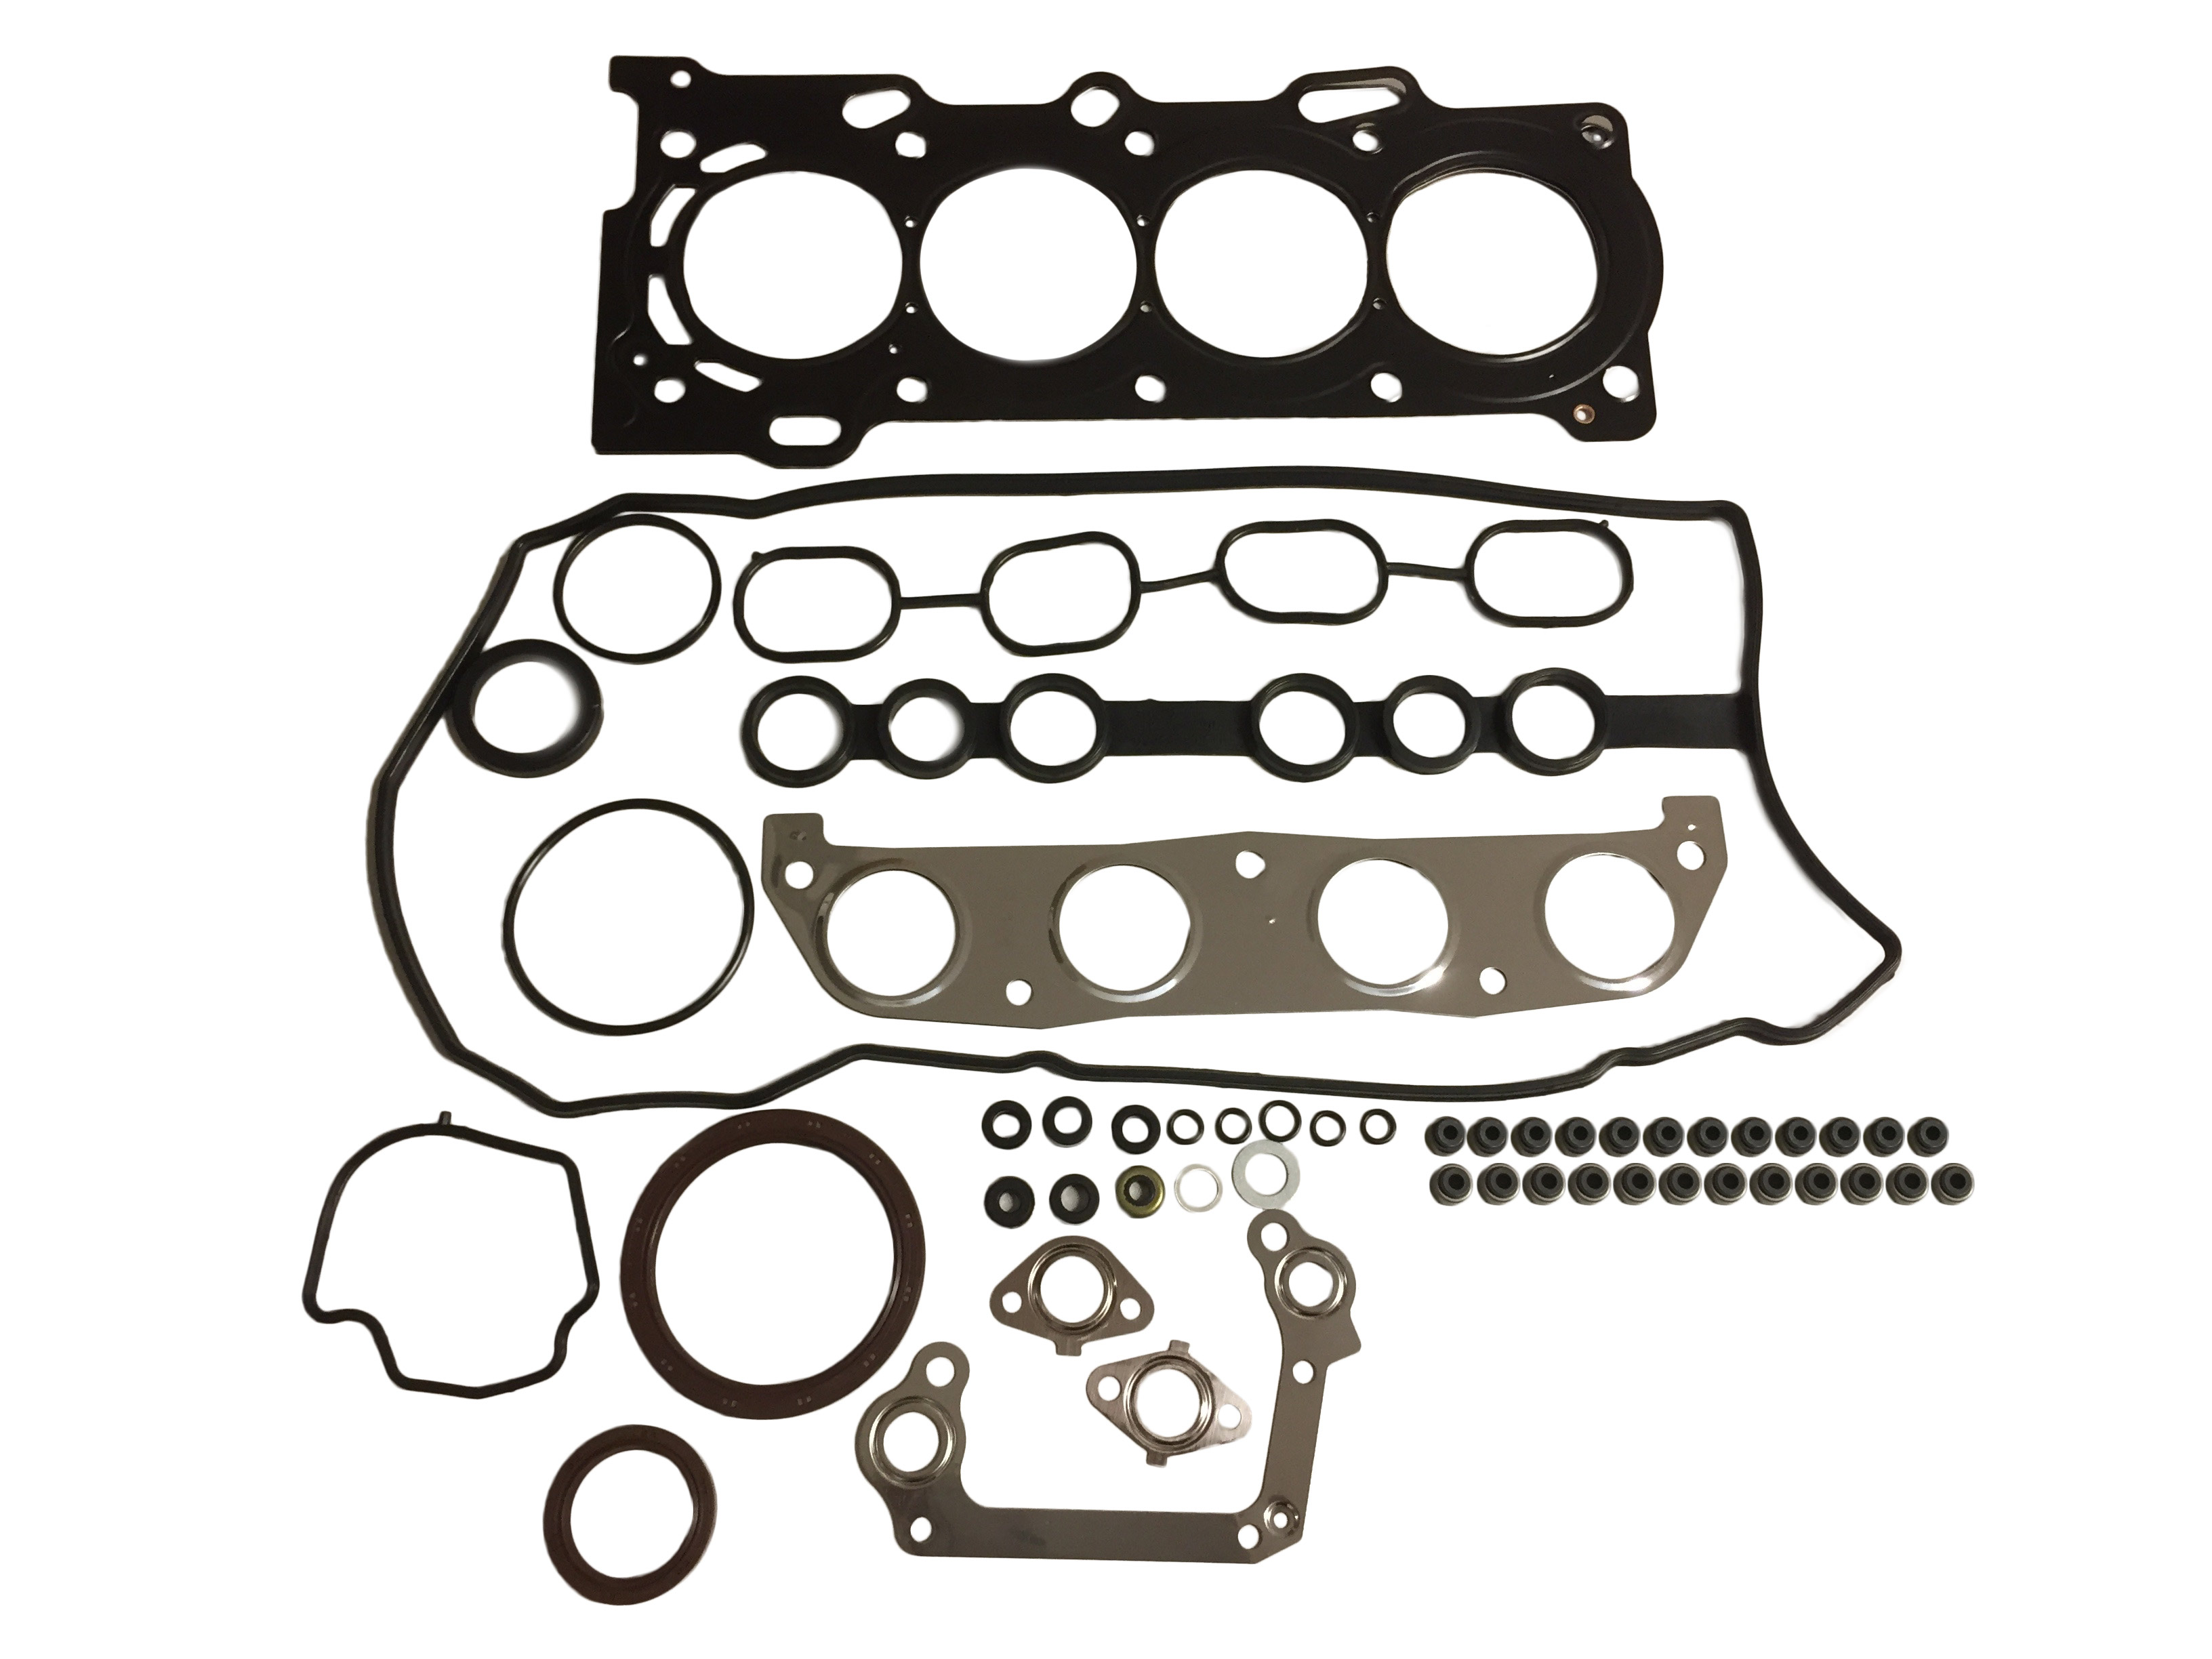 Gasket set cylinder head gasket Toyota Avensis T22 and 1.6 VVT-i 3ZZ-FE 3ZZ NEW